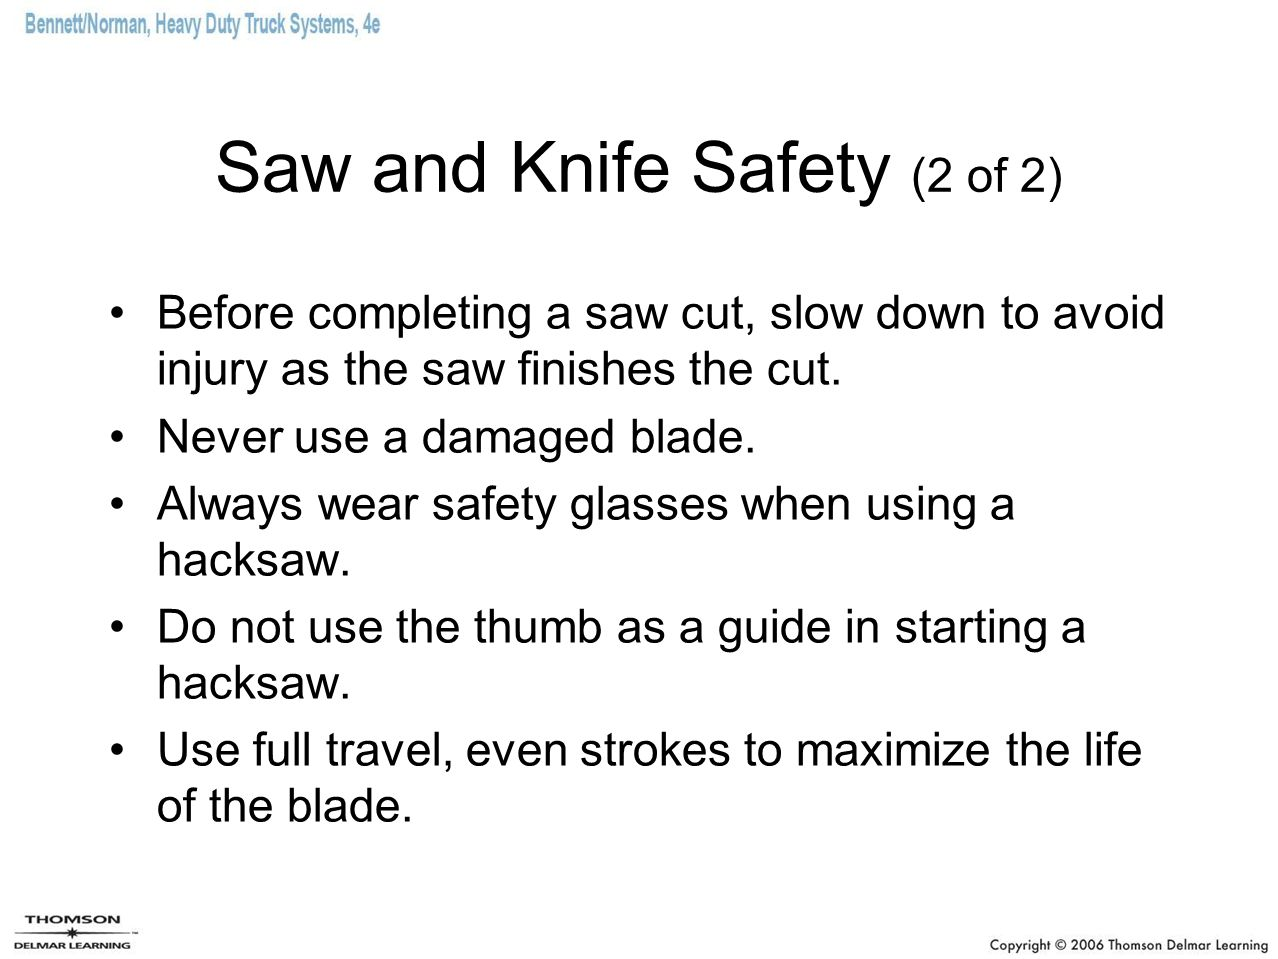 Saw and Knife Safety (2 of 2)